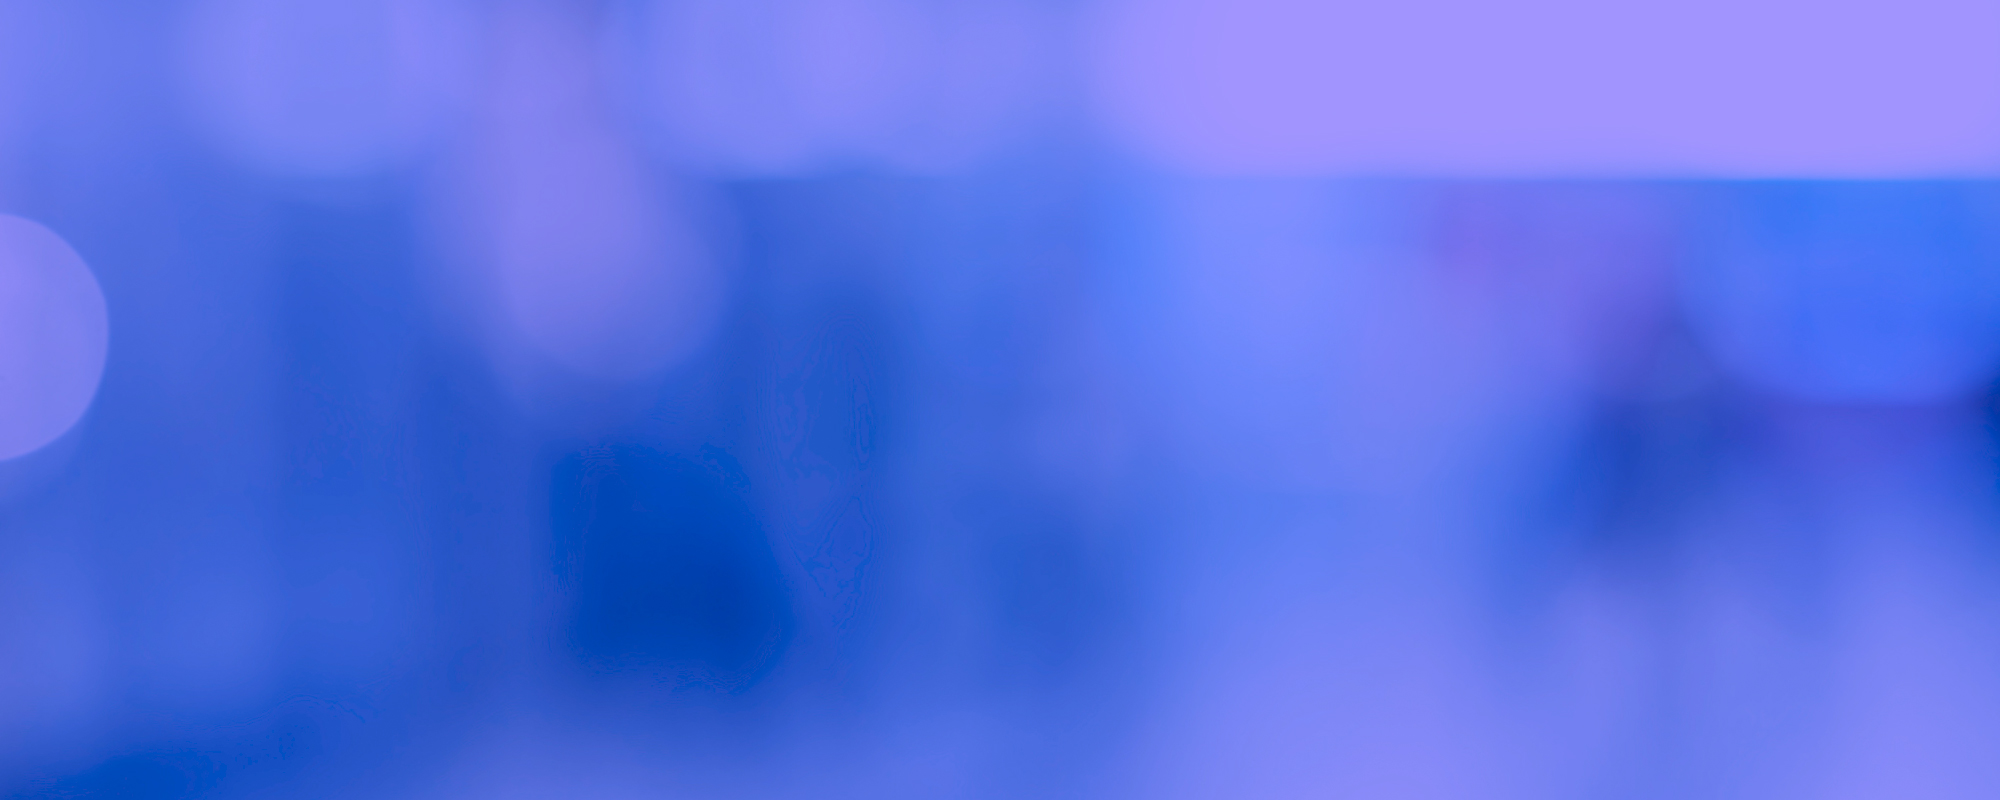 blue/purple abstract